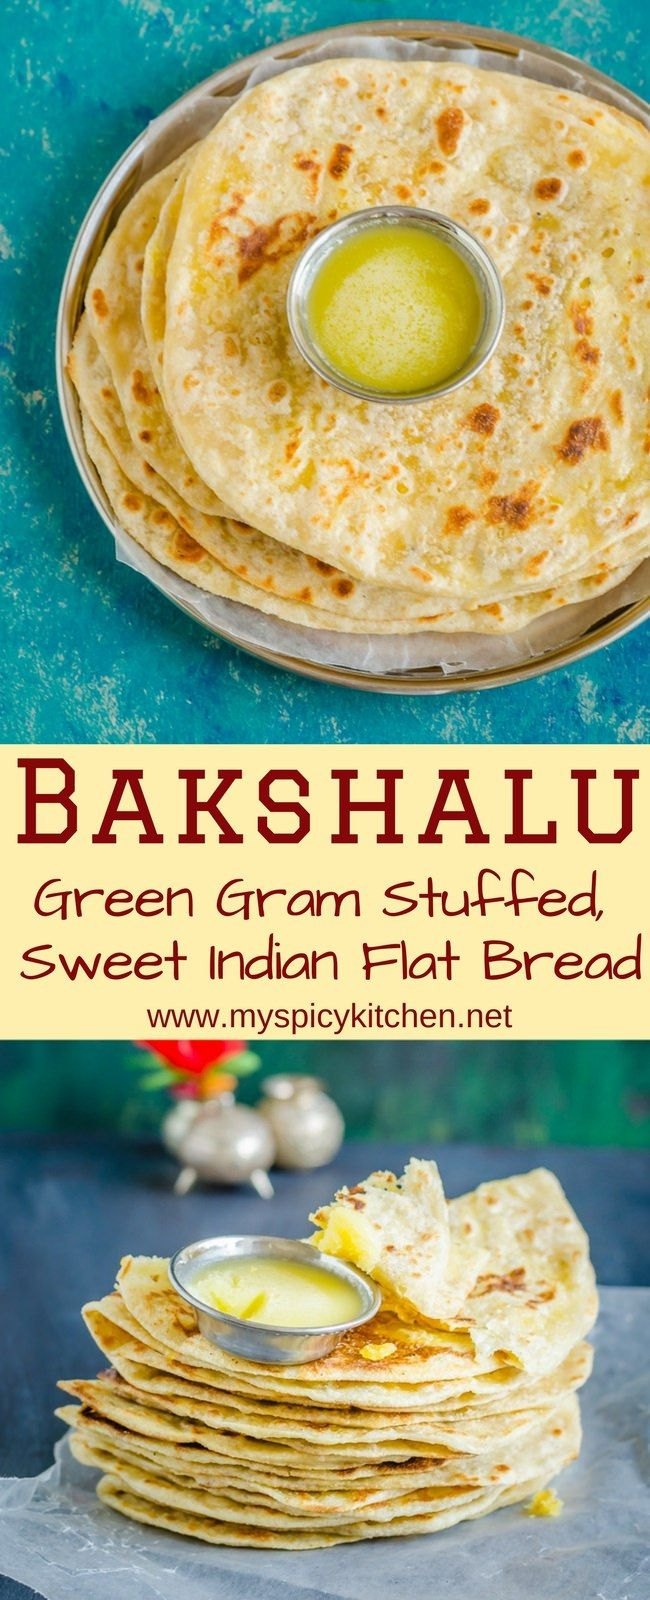 A long vertical pin designed for Pinterest. One image is a plate of bakshalu (Sweet flatbread) with a bowl of ghee and another image is stack of bakshalu folded in half with a bowl of ghee.